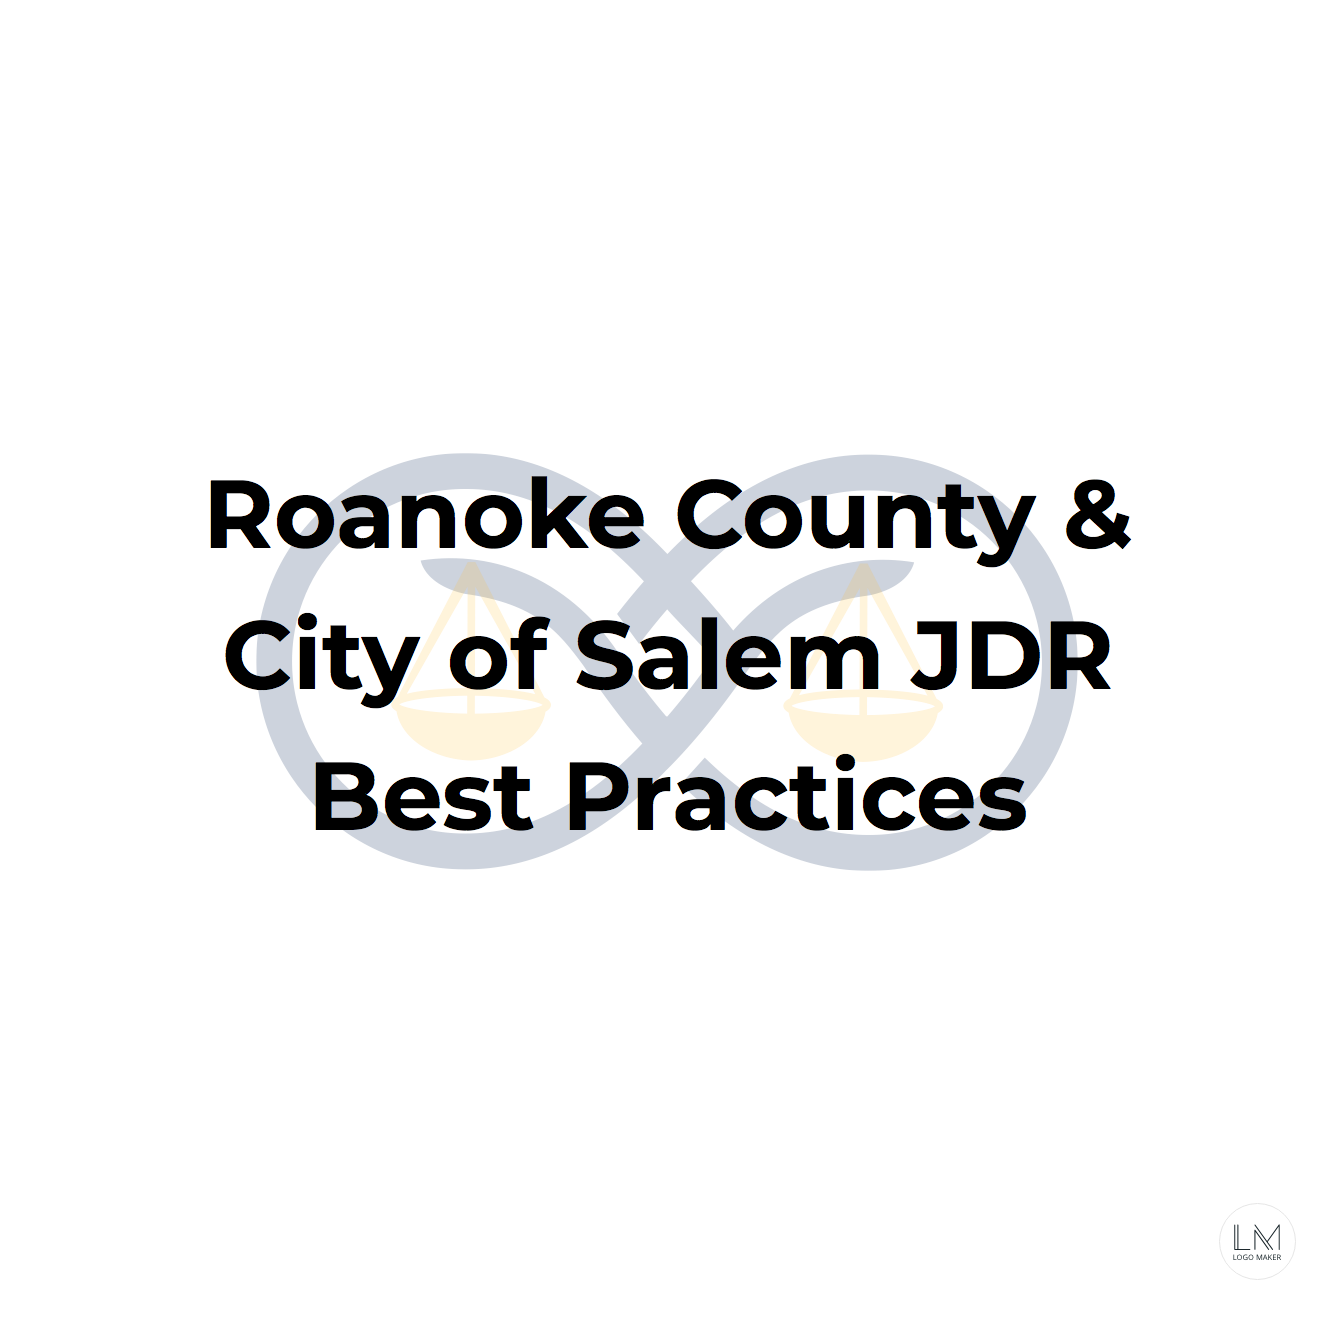 Roanoke County JDR.png